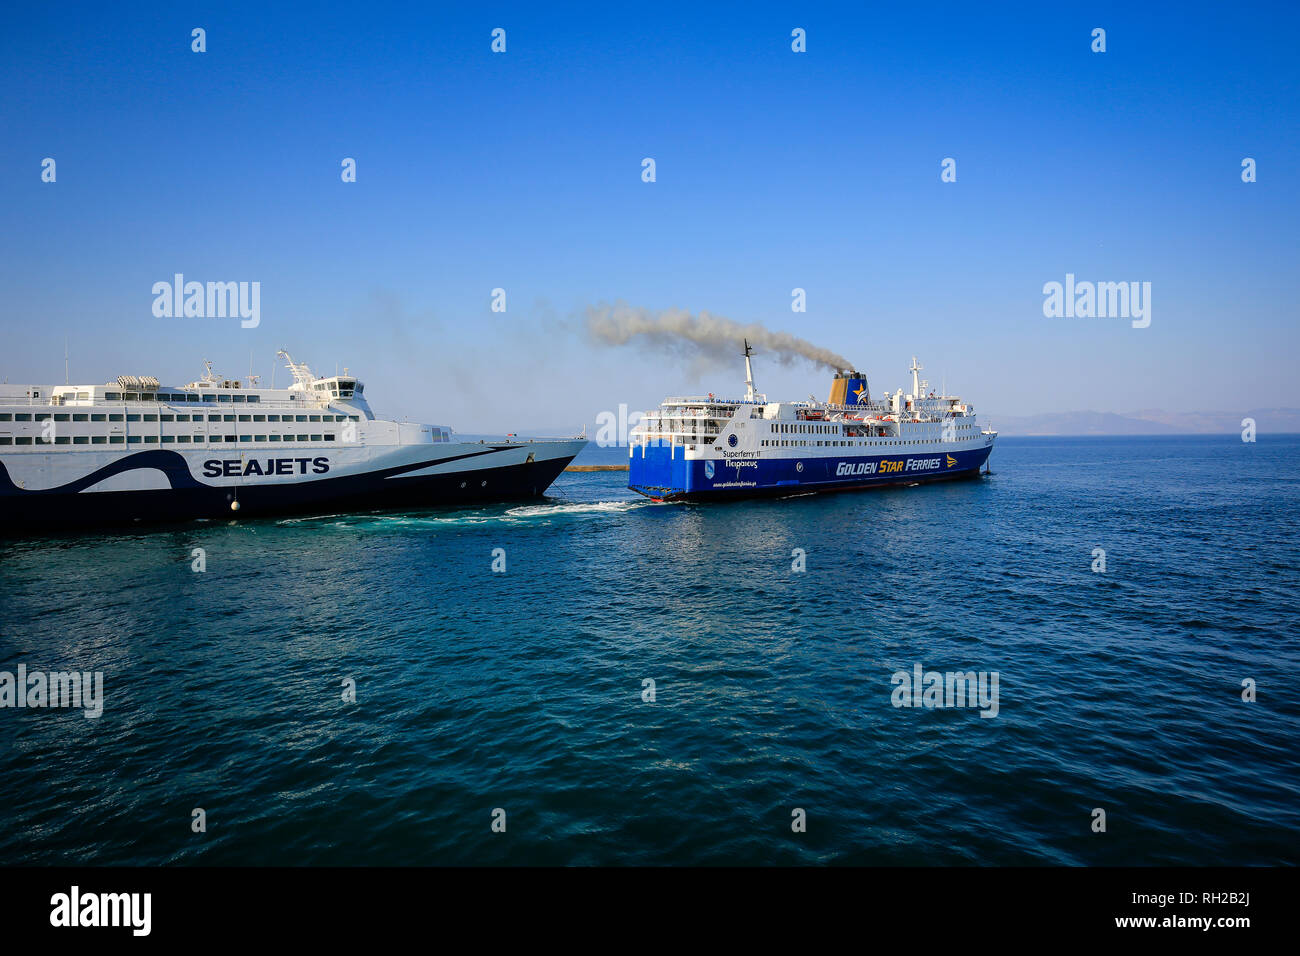 Rafina, Attica, Greece - Seajets and Golden Star Ferries ferries run from the port of Rafina to the Cyclades Islands. Rafina, Attika, Griechenland - F - Stock Image